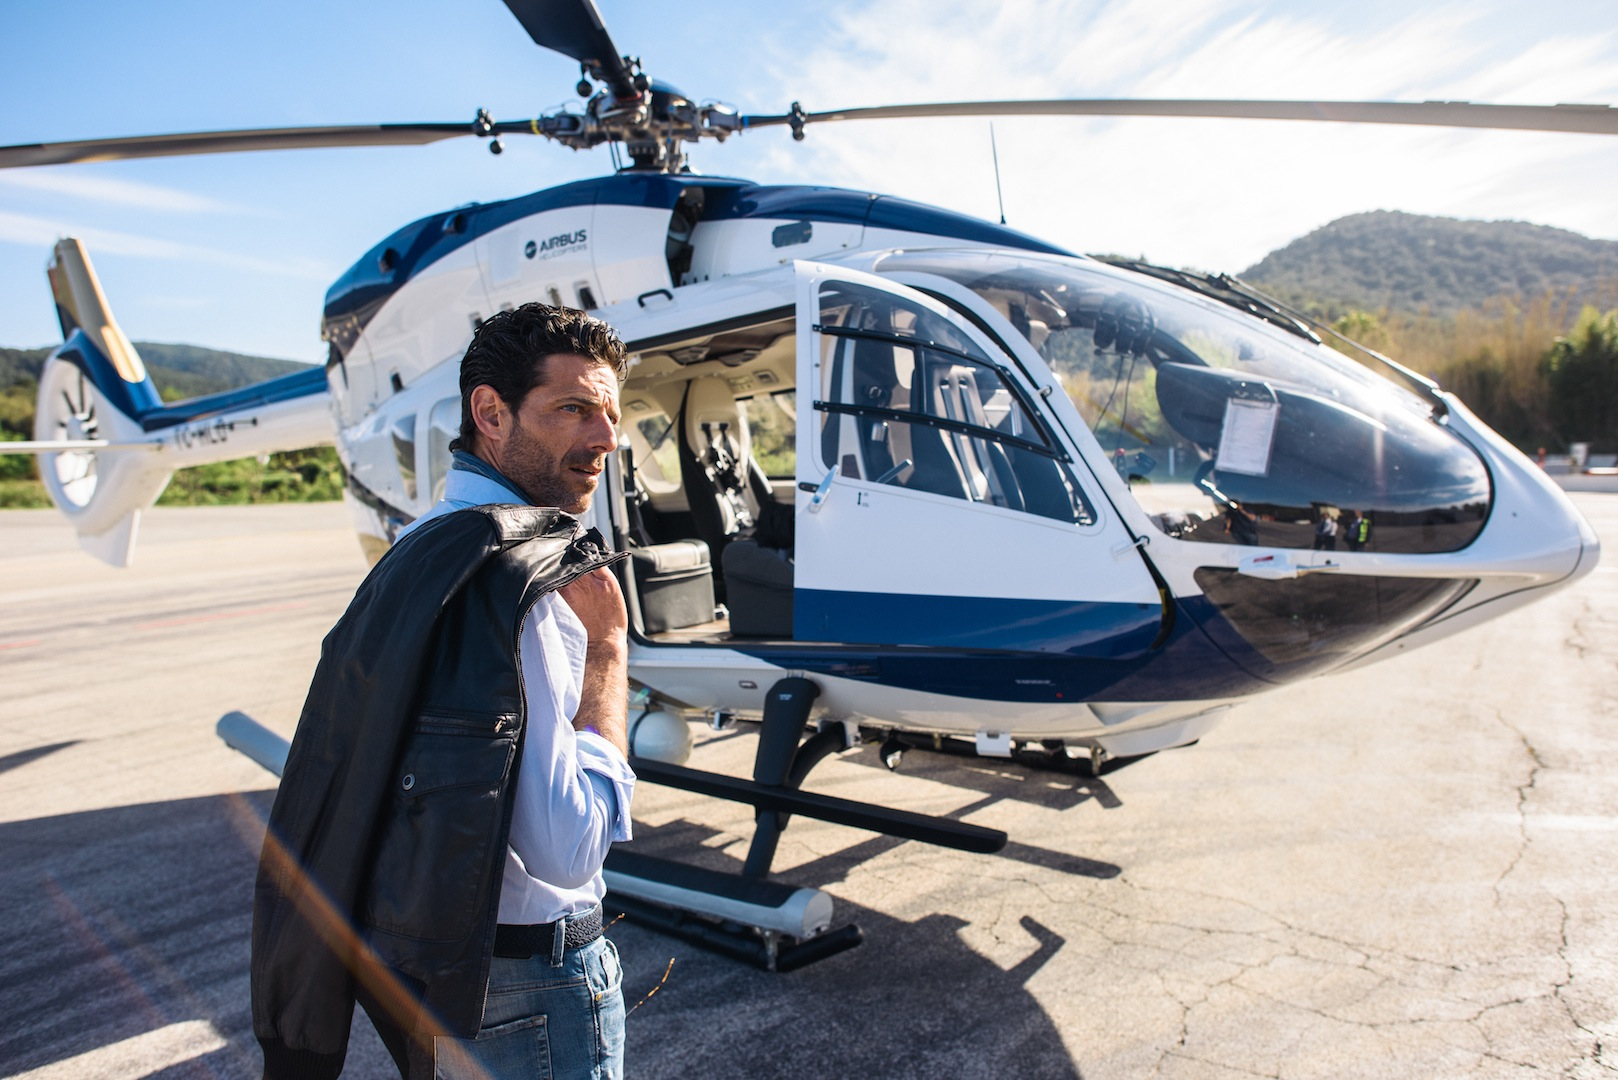 Airbus helicopters h145 by mercedes benz style review for Mercedes benz helicopter price